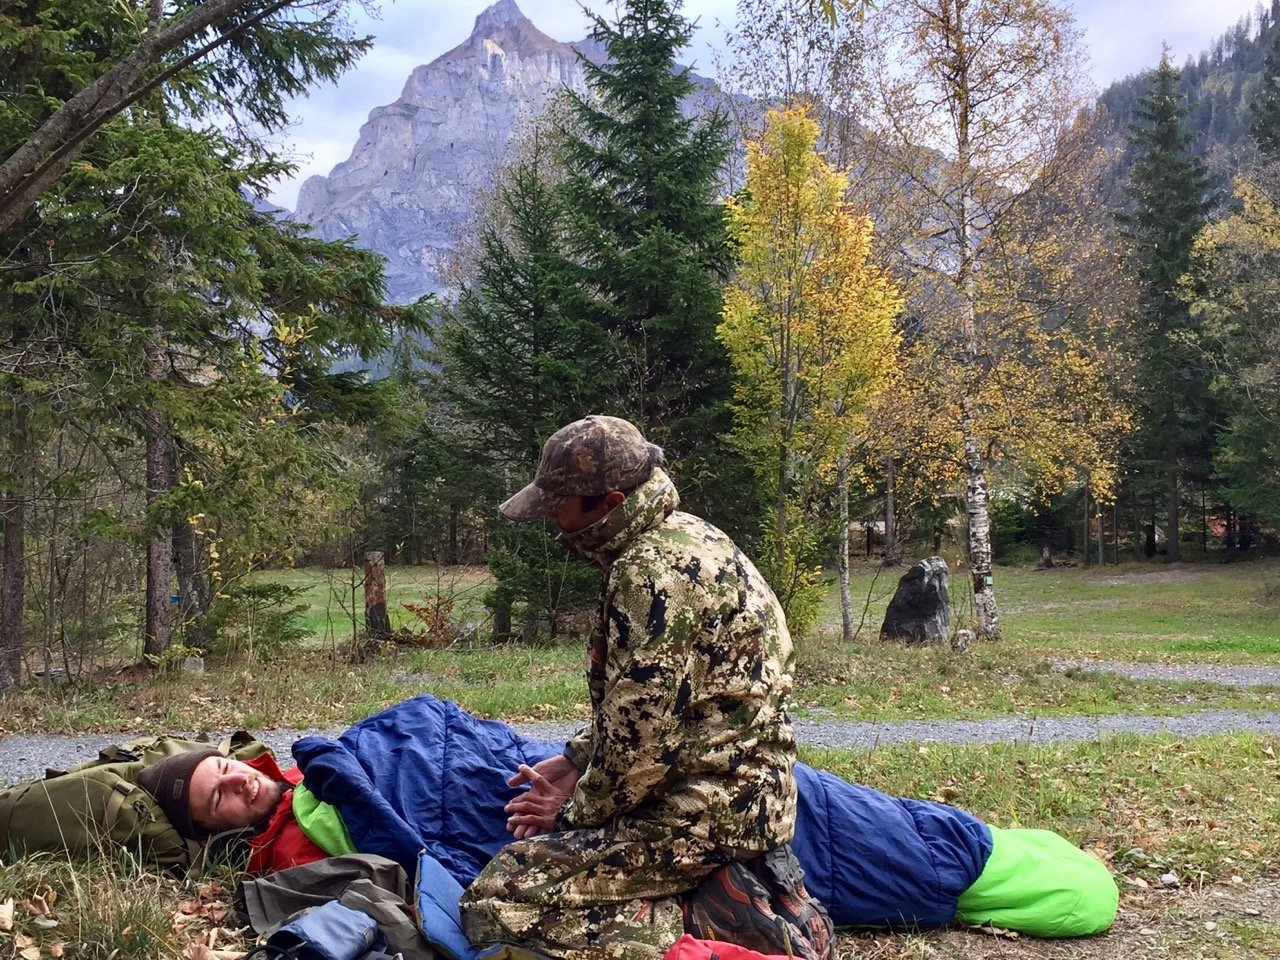 ABCs of Wilderness Medicine: The Initial Assessment